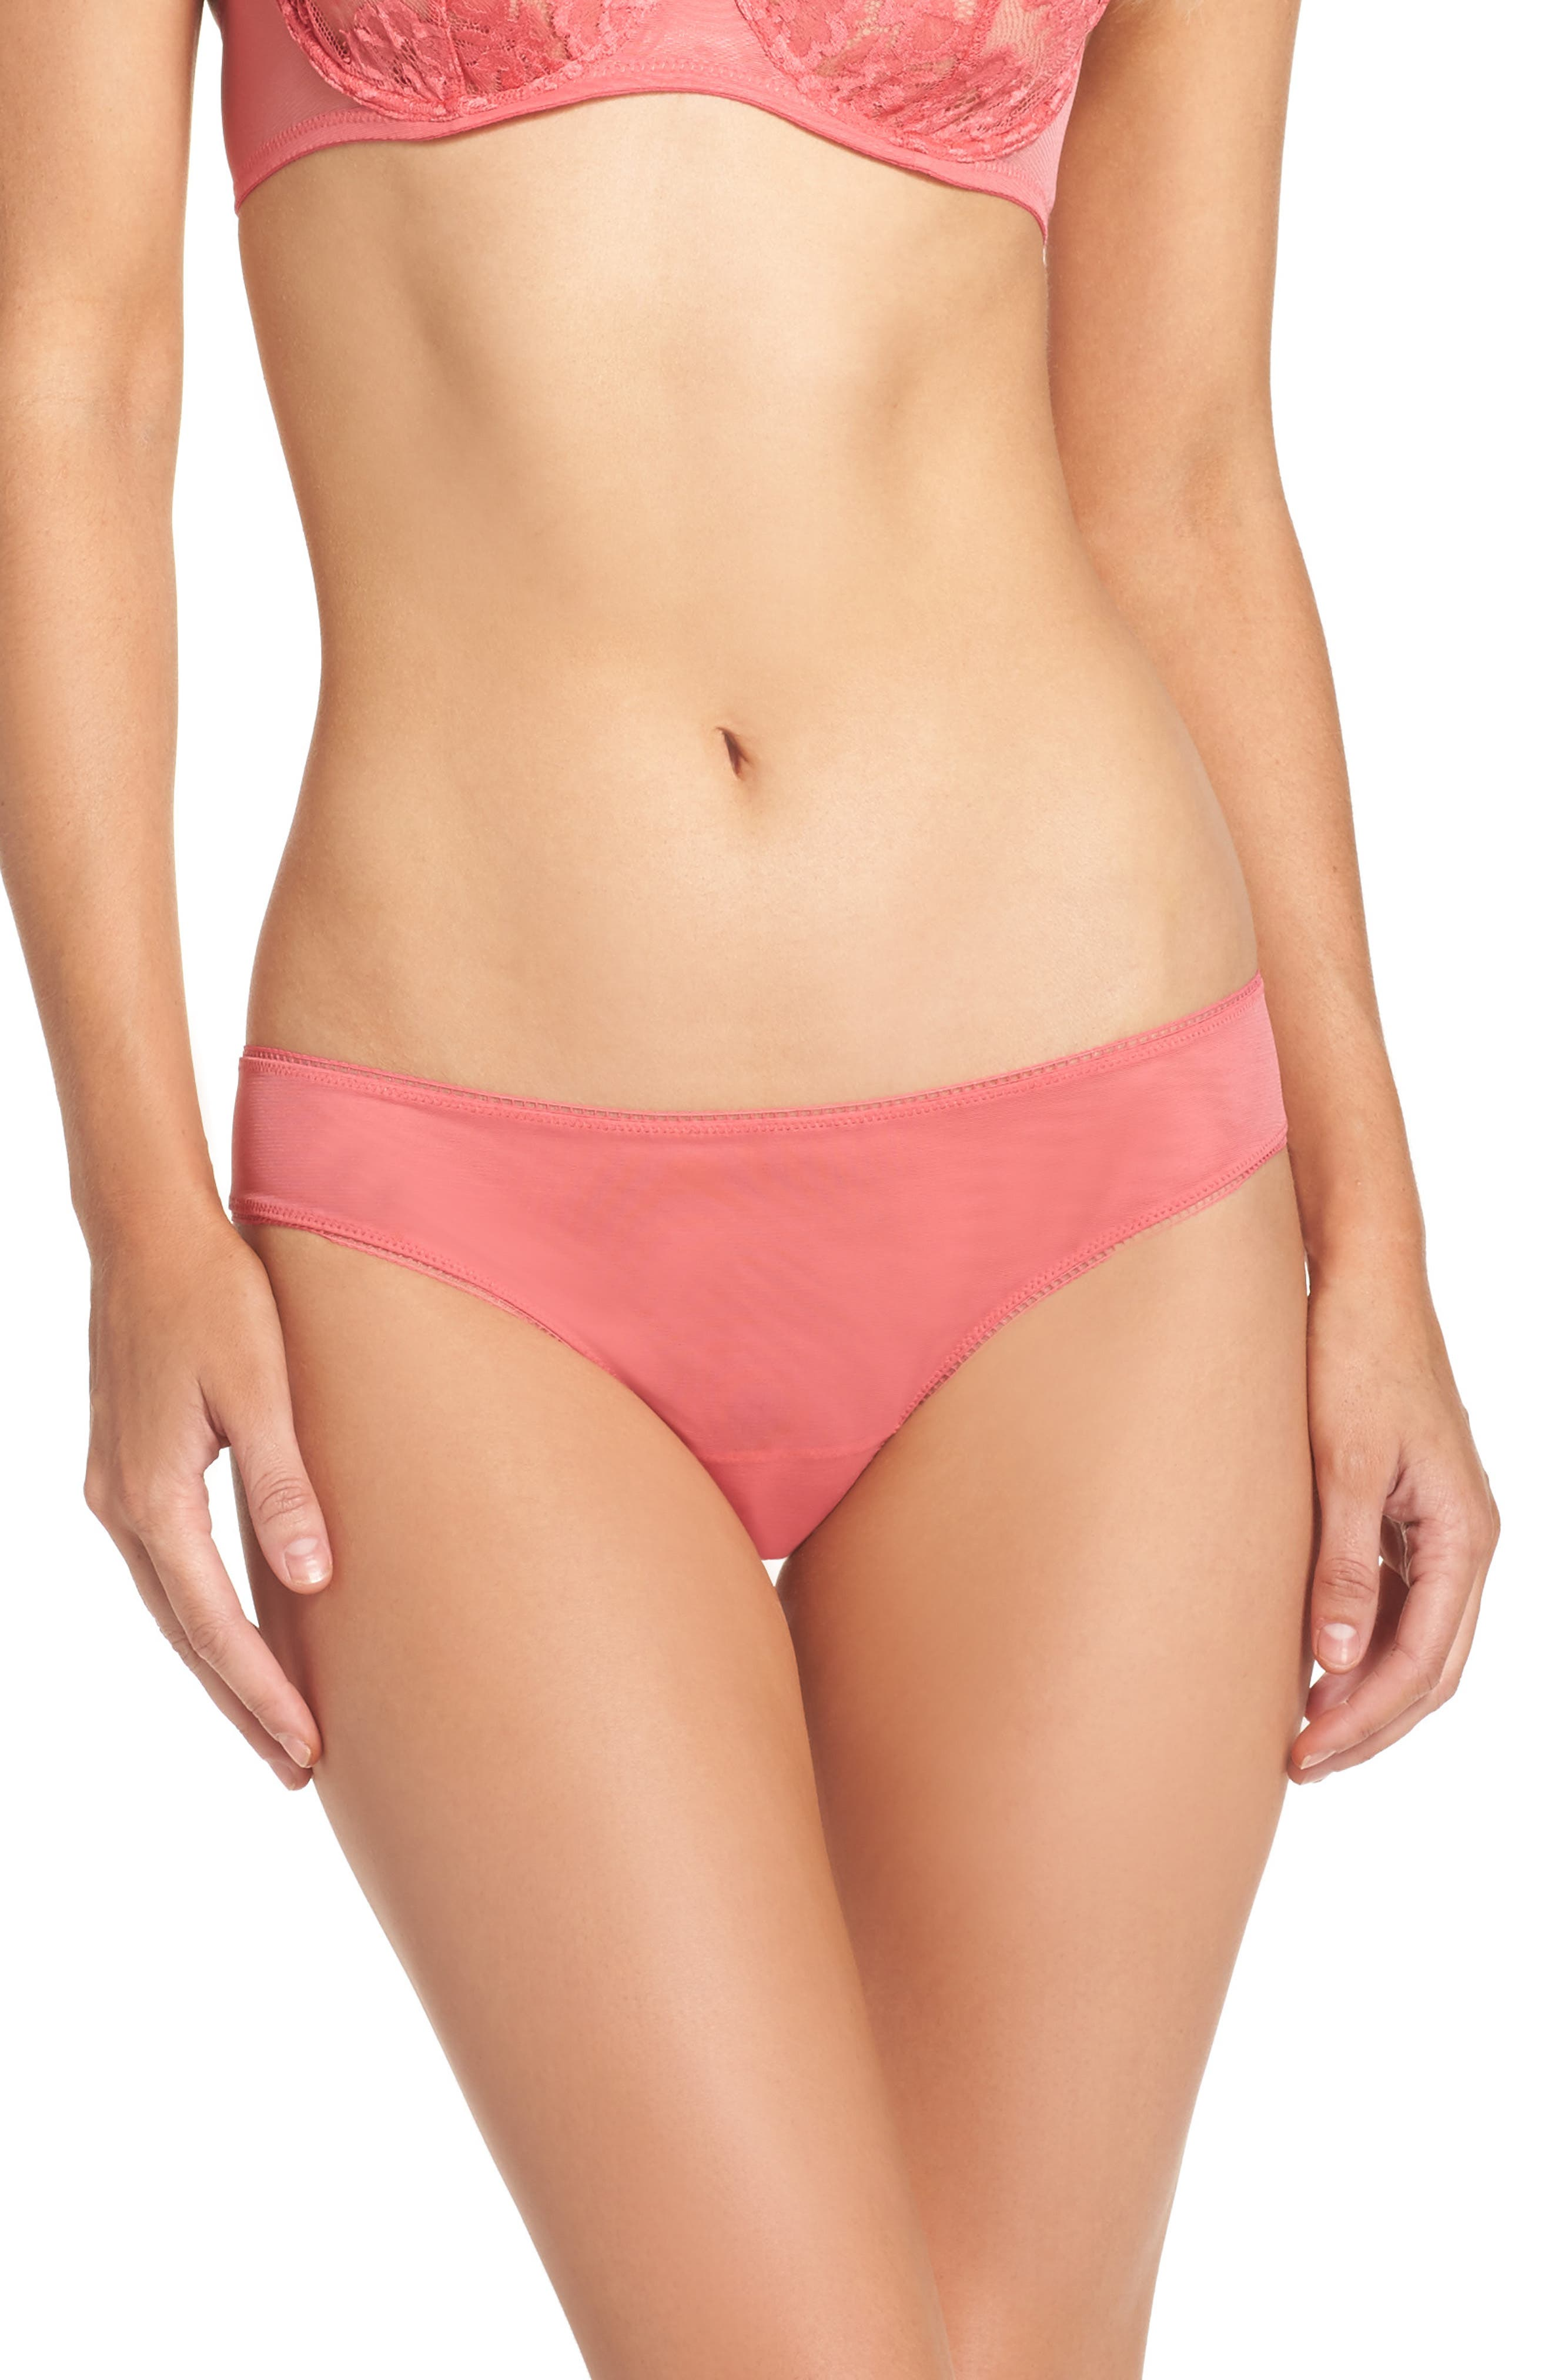 Primrose Field Brazilian Panties,                             Main thumbnail 1, color,                             950